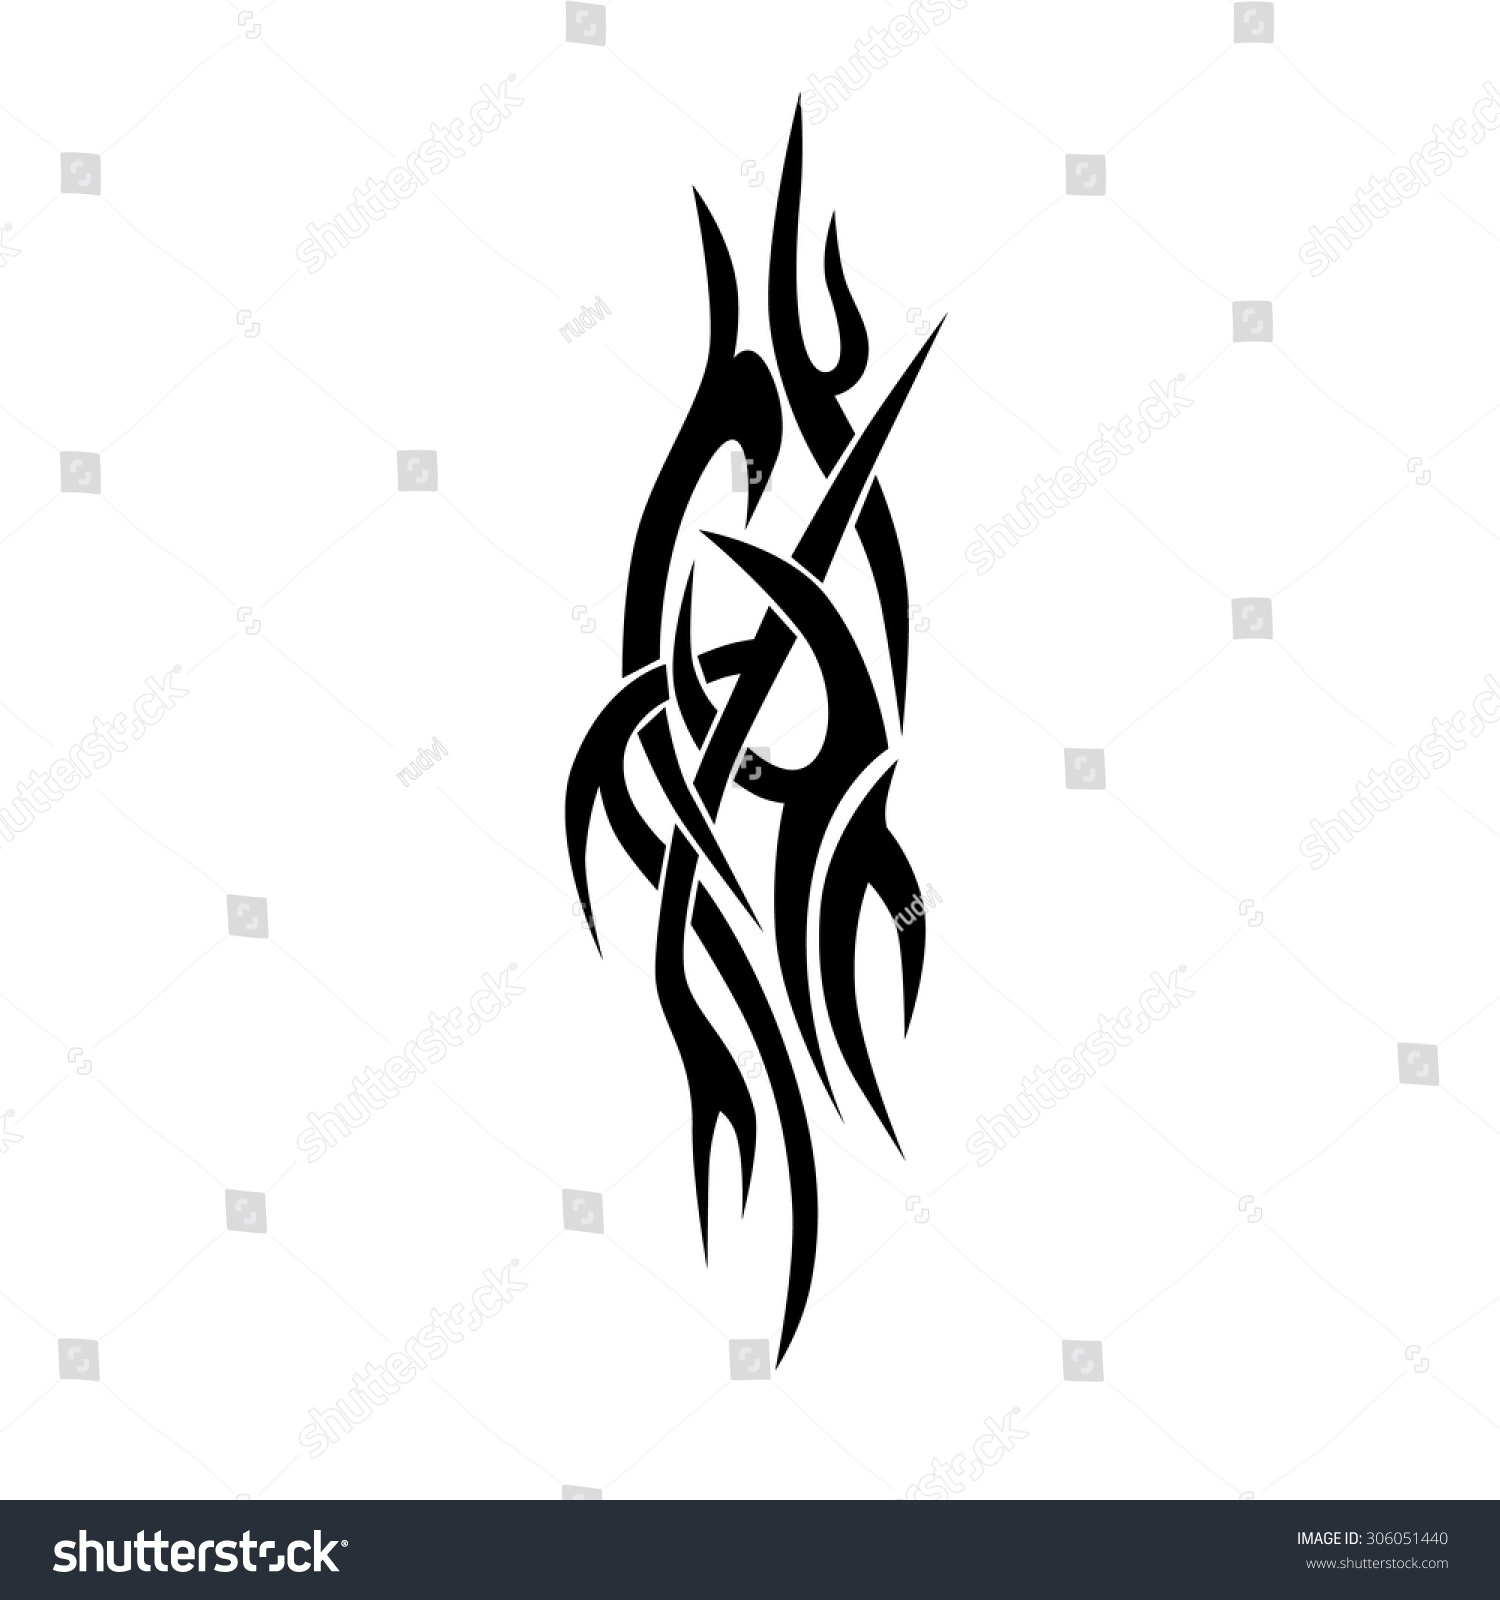 Tribal-Tattoos stock-vector-vector-tribal-tattoo-designs-tribal-tattoos-art-tribal-tattoo-vector-sketch-of-a-tattoo-306051440